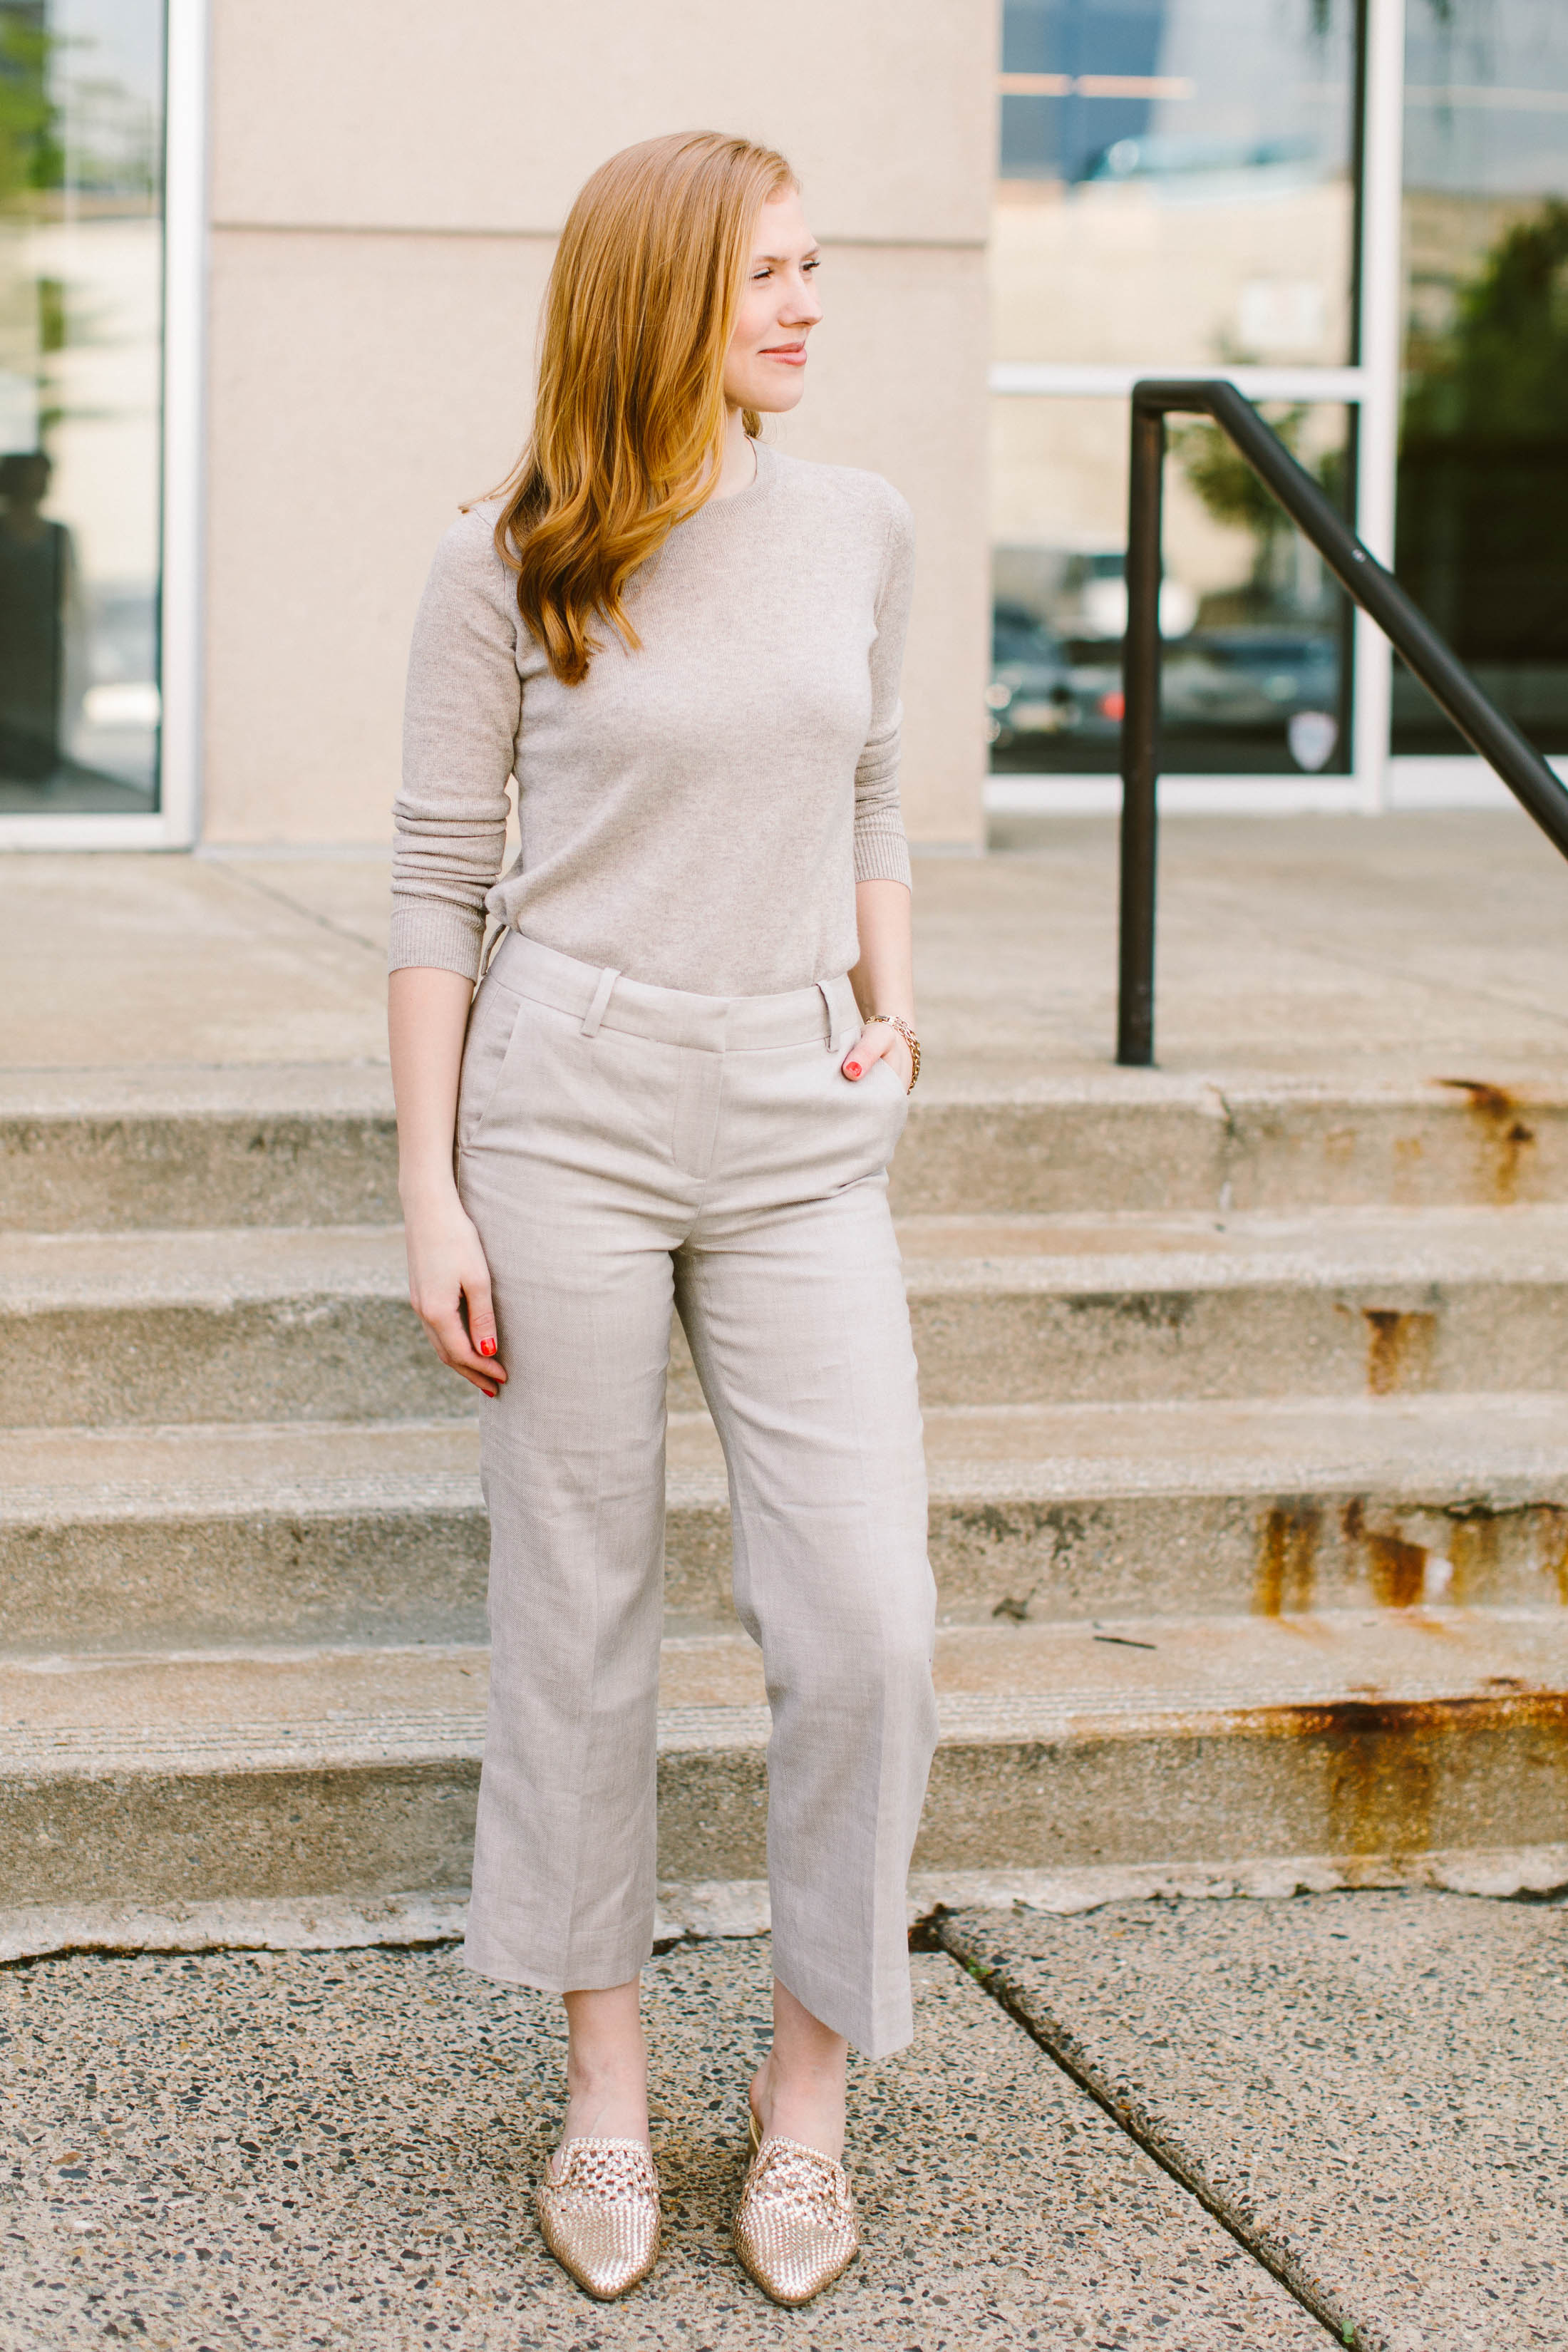 Dressing for the office is HARD in summer. Hot outside, FREEZING inside. We've got 4 foolproof work outfit ideas for exactly this. See what we're wearing.